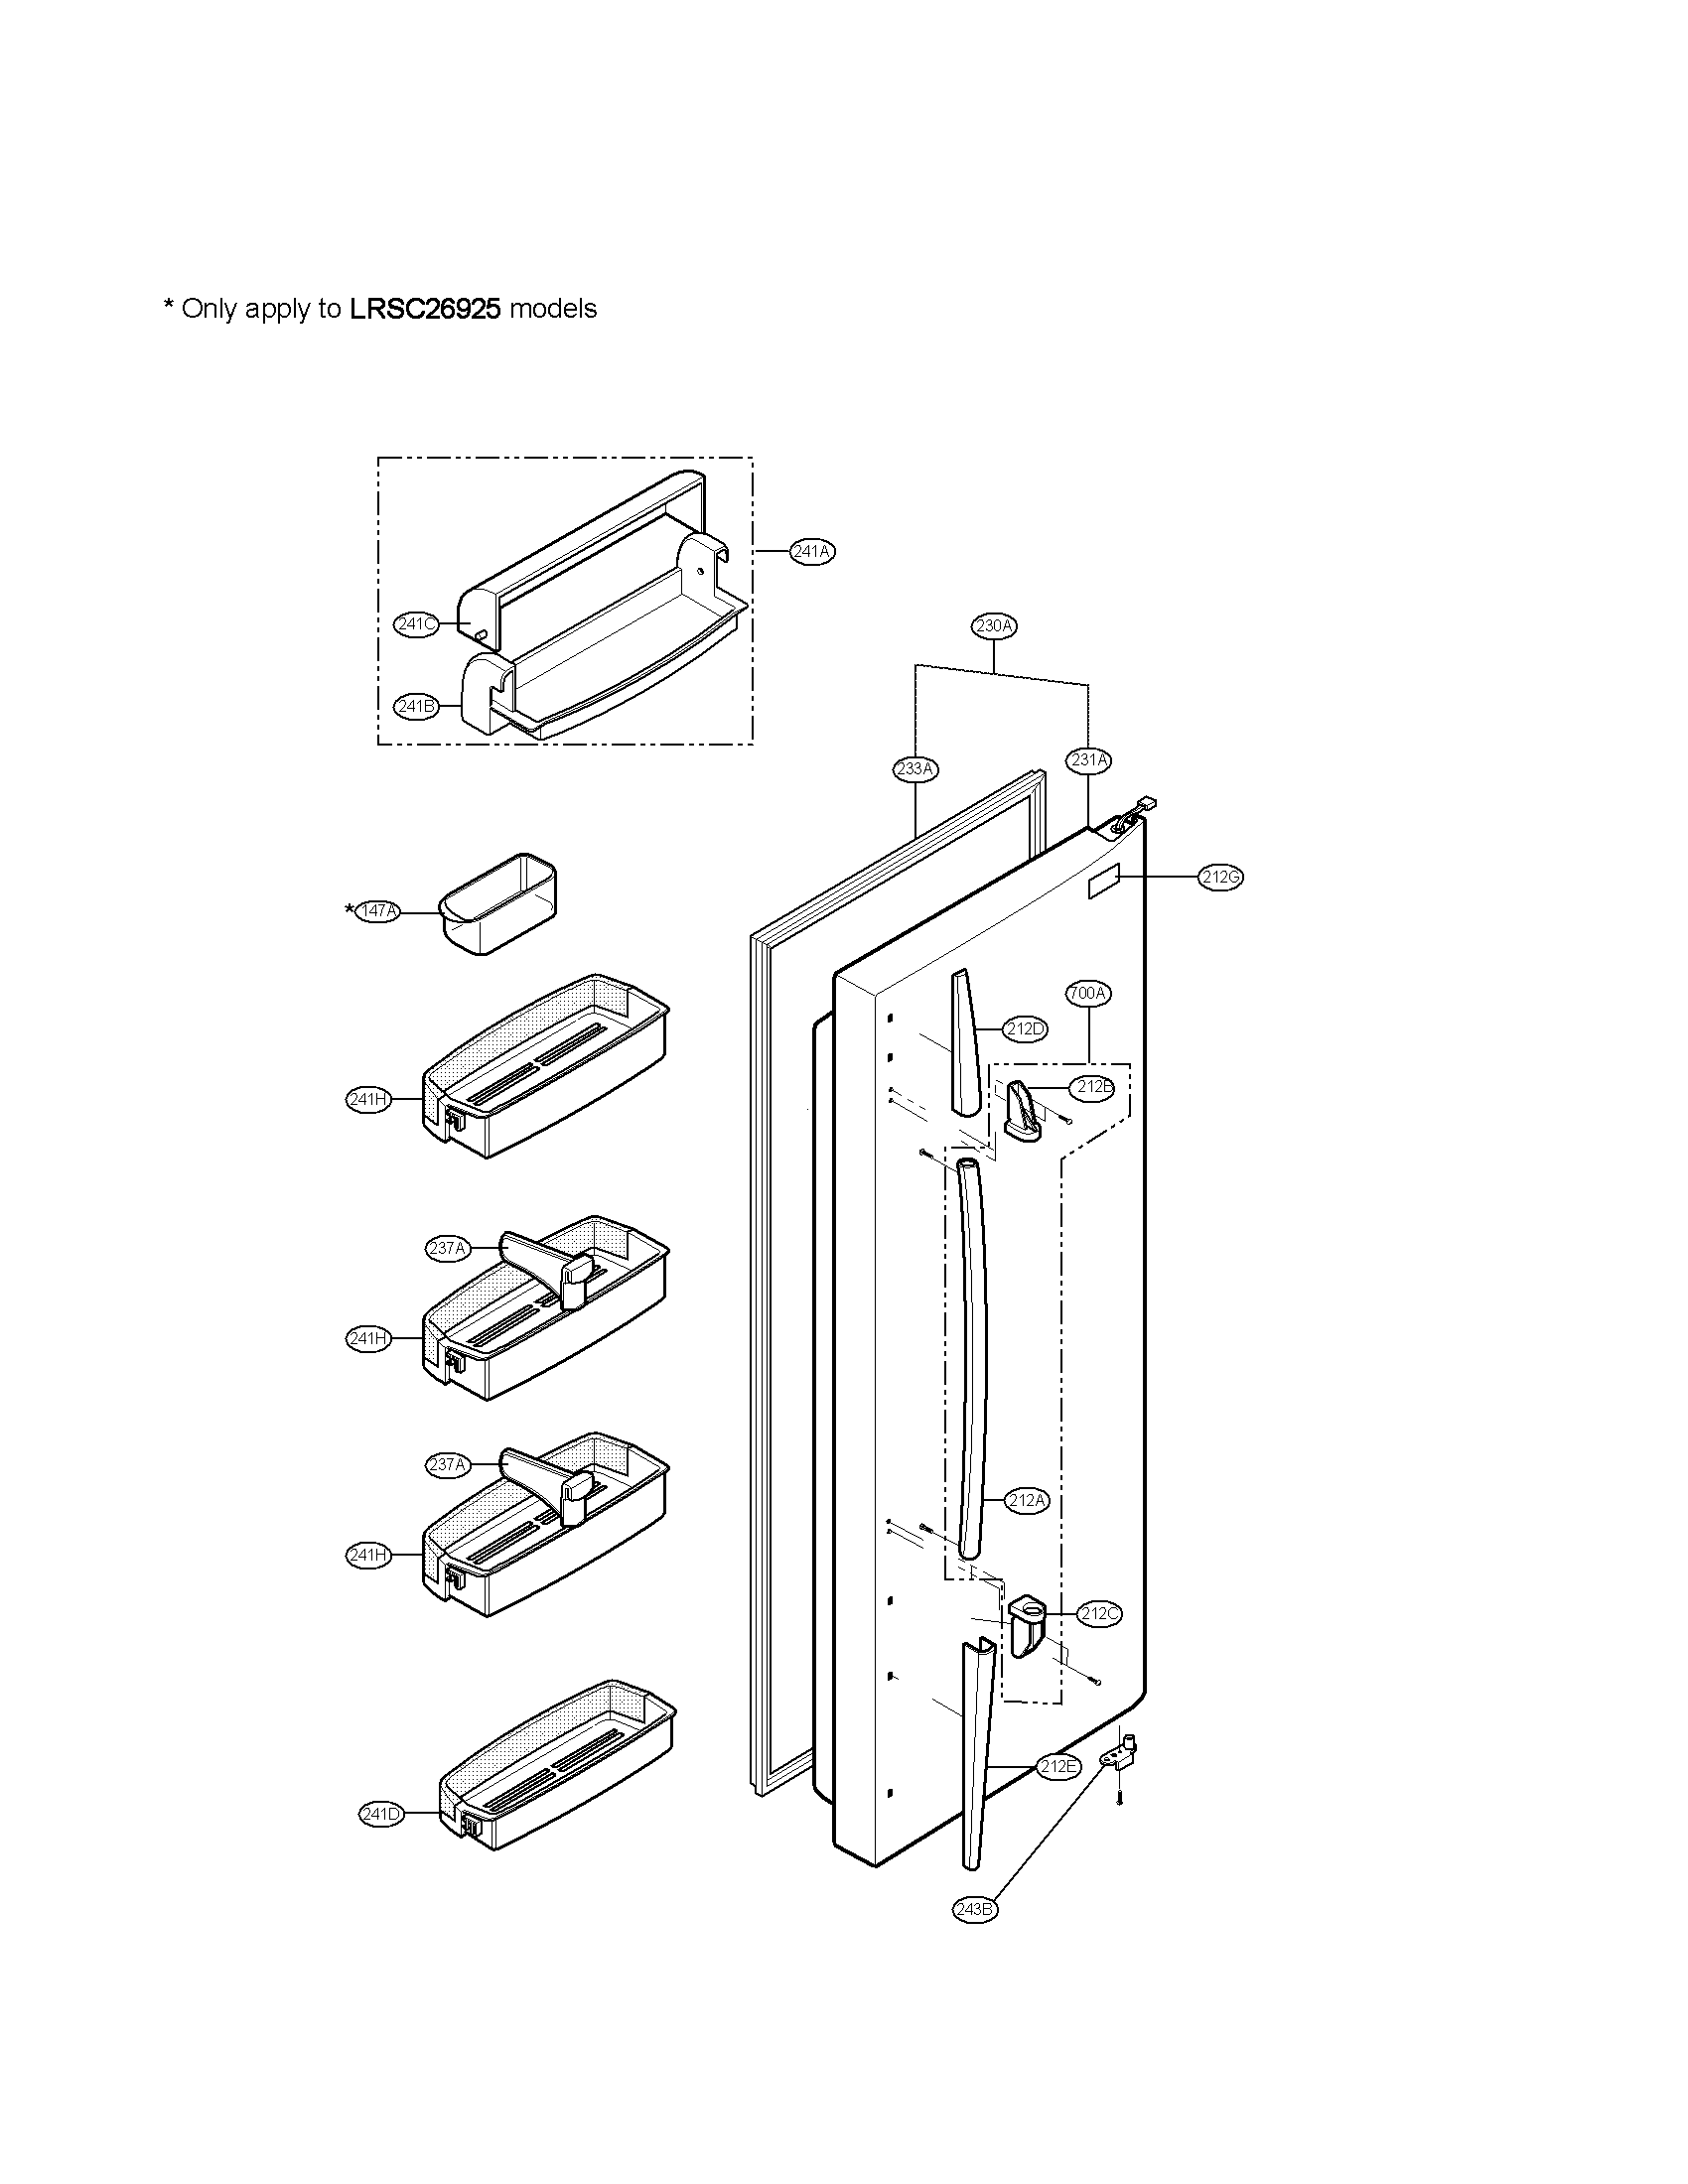 Lg model LRSC26925TT side-by-side refrigerator genuine parts